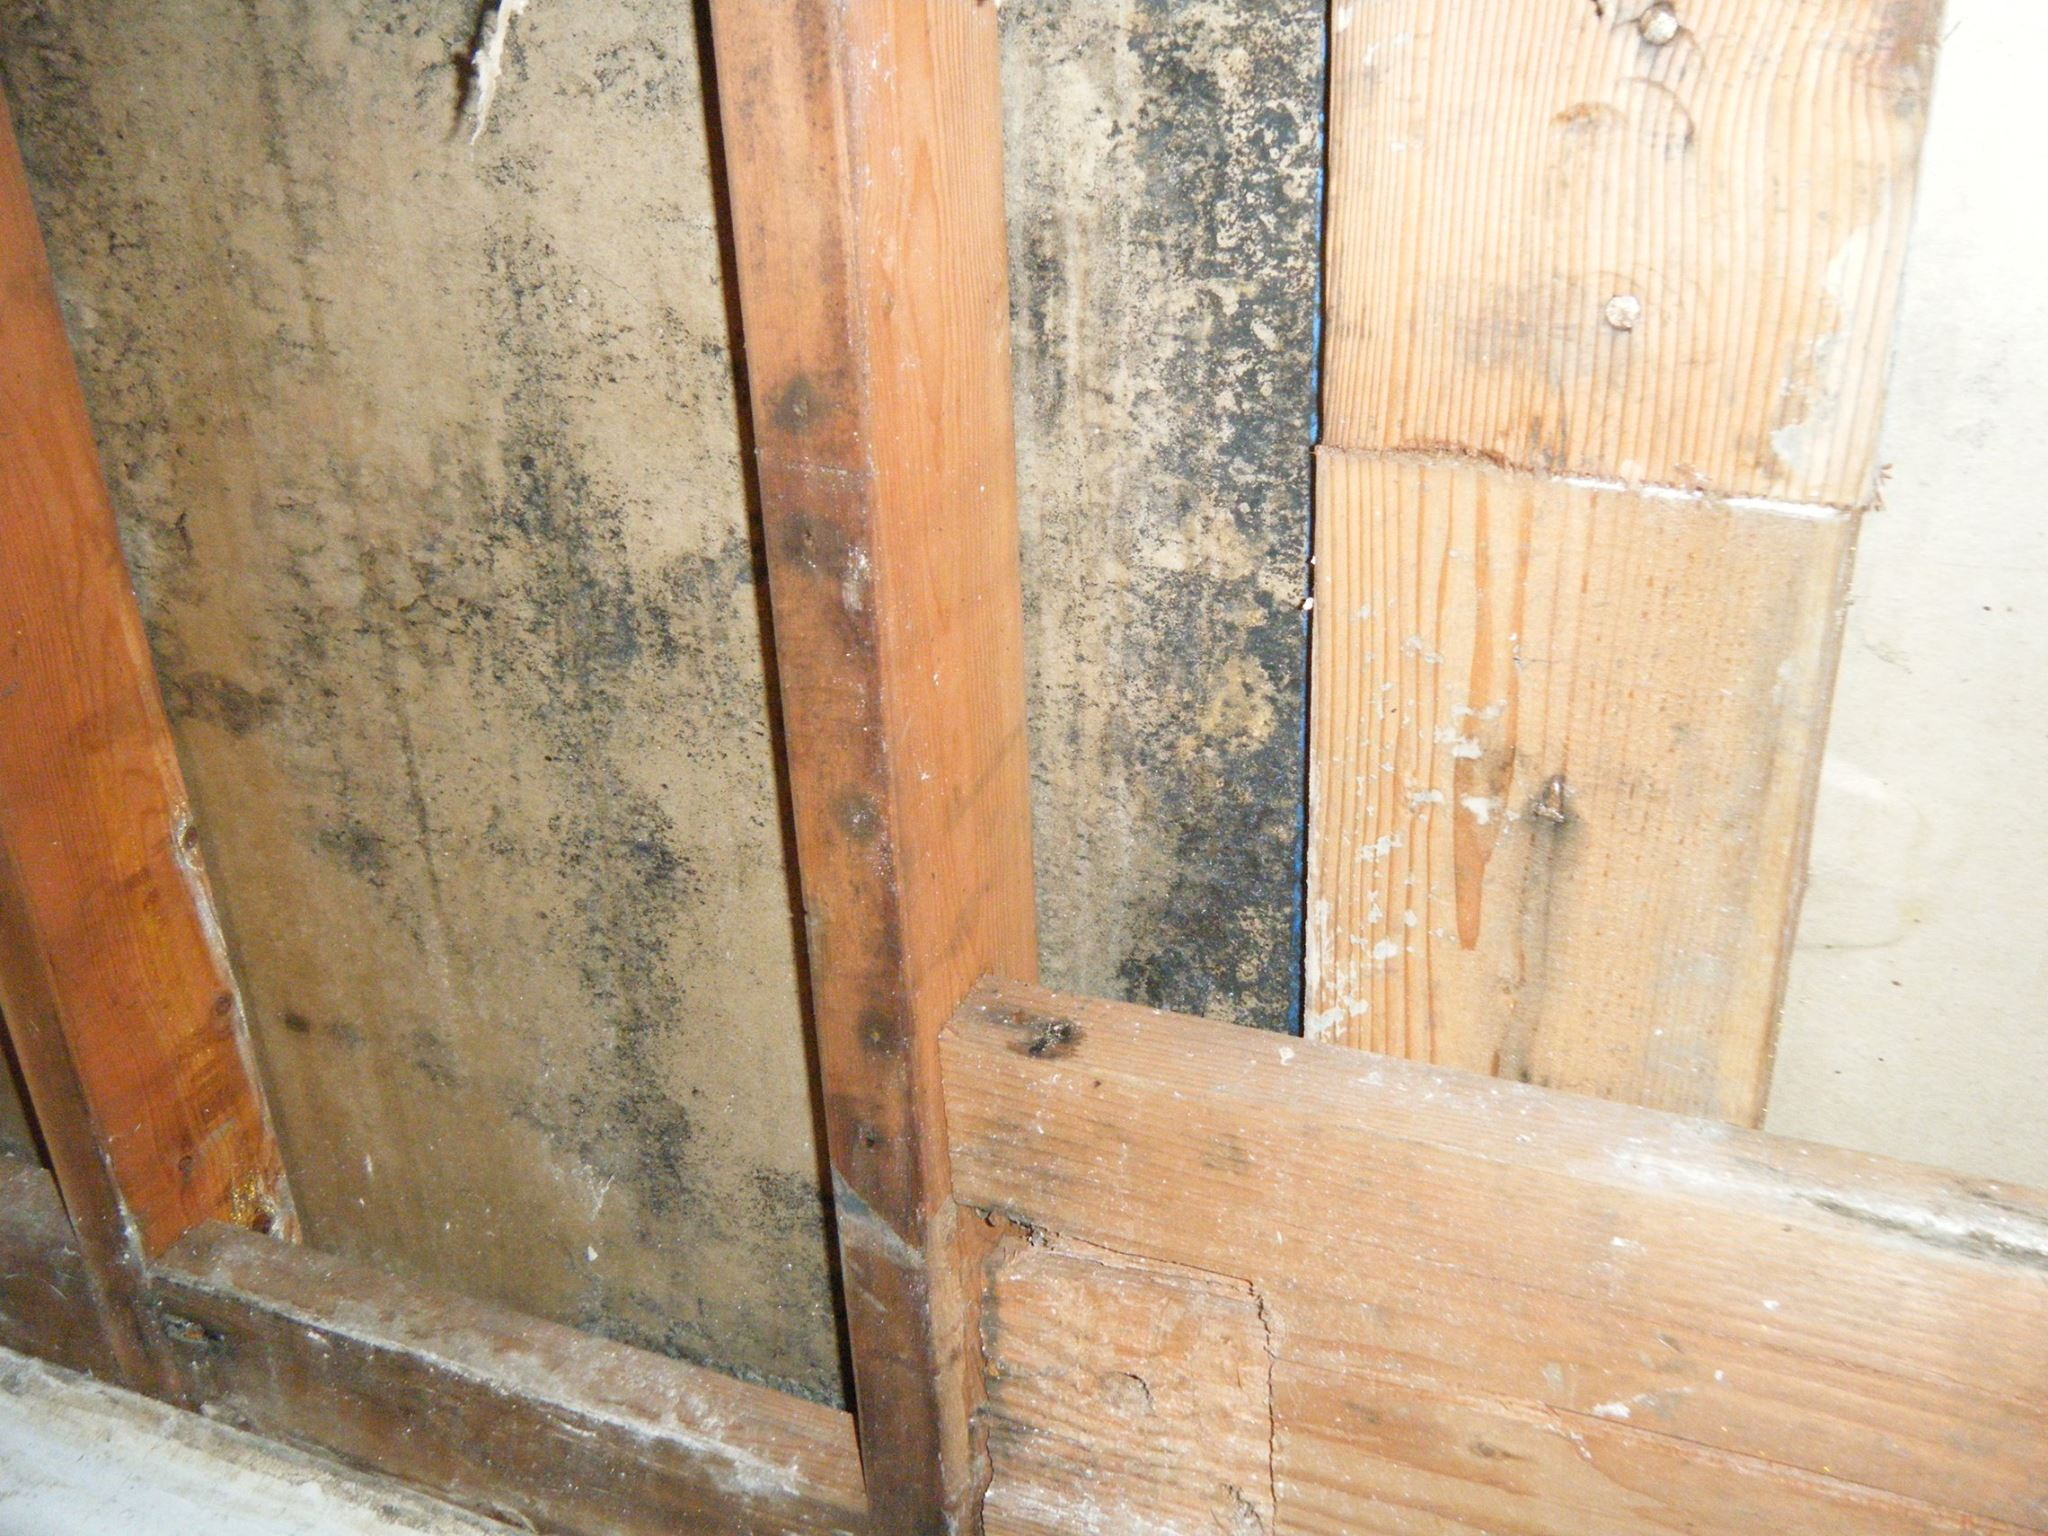 Mold behind walls